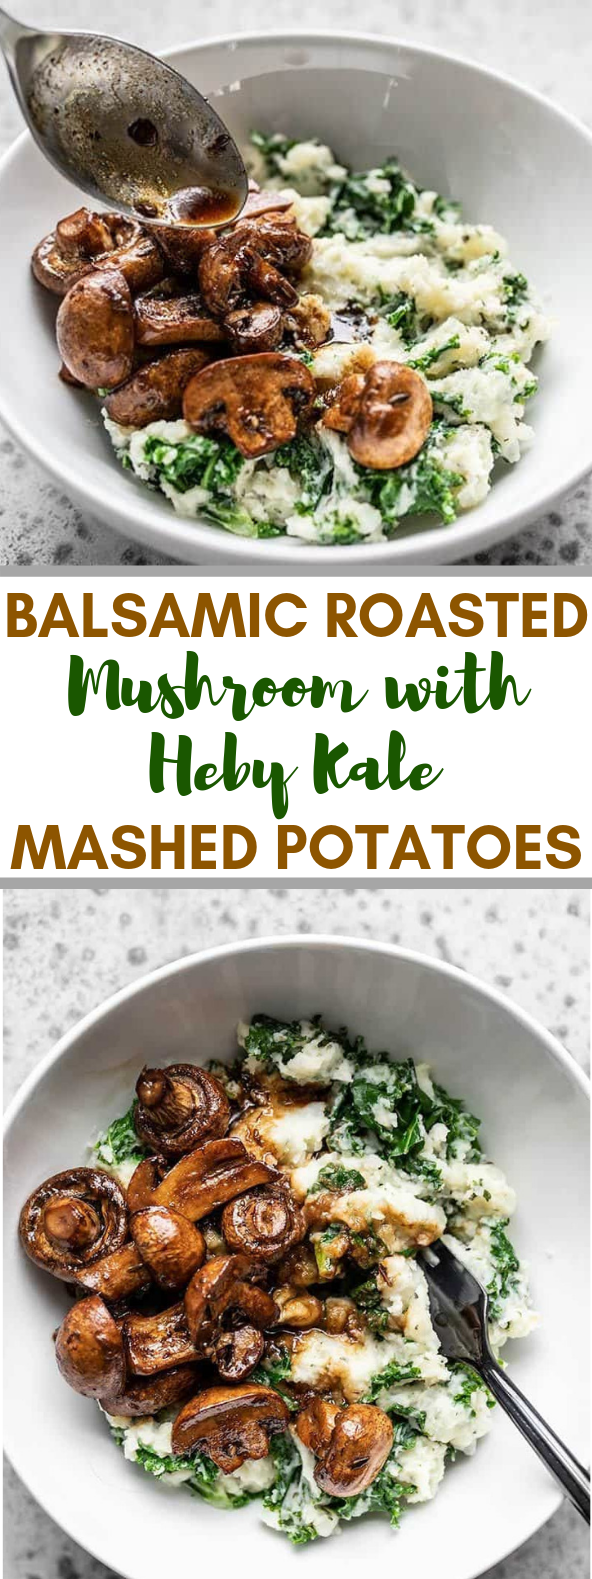 BALSAMIC ROASTED MUSHROOMS WITH HERBY KALE MASHED POTATOES #vegetarian #food